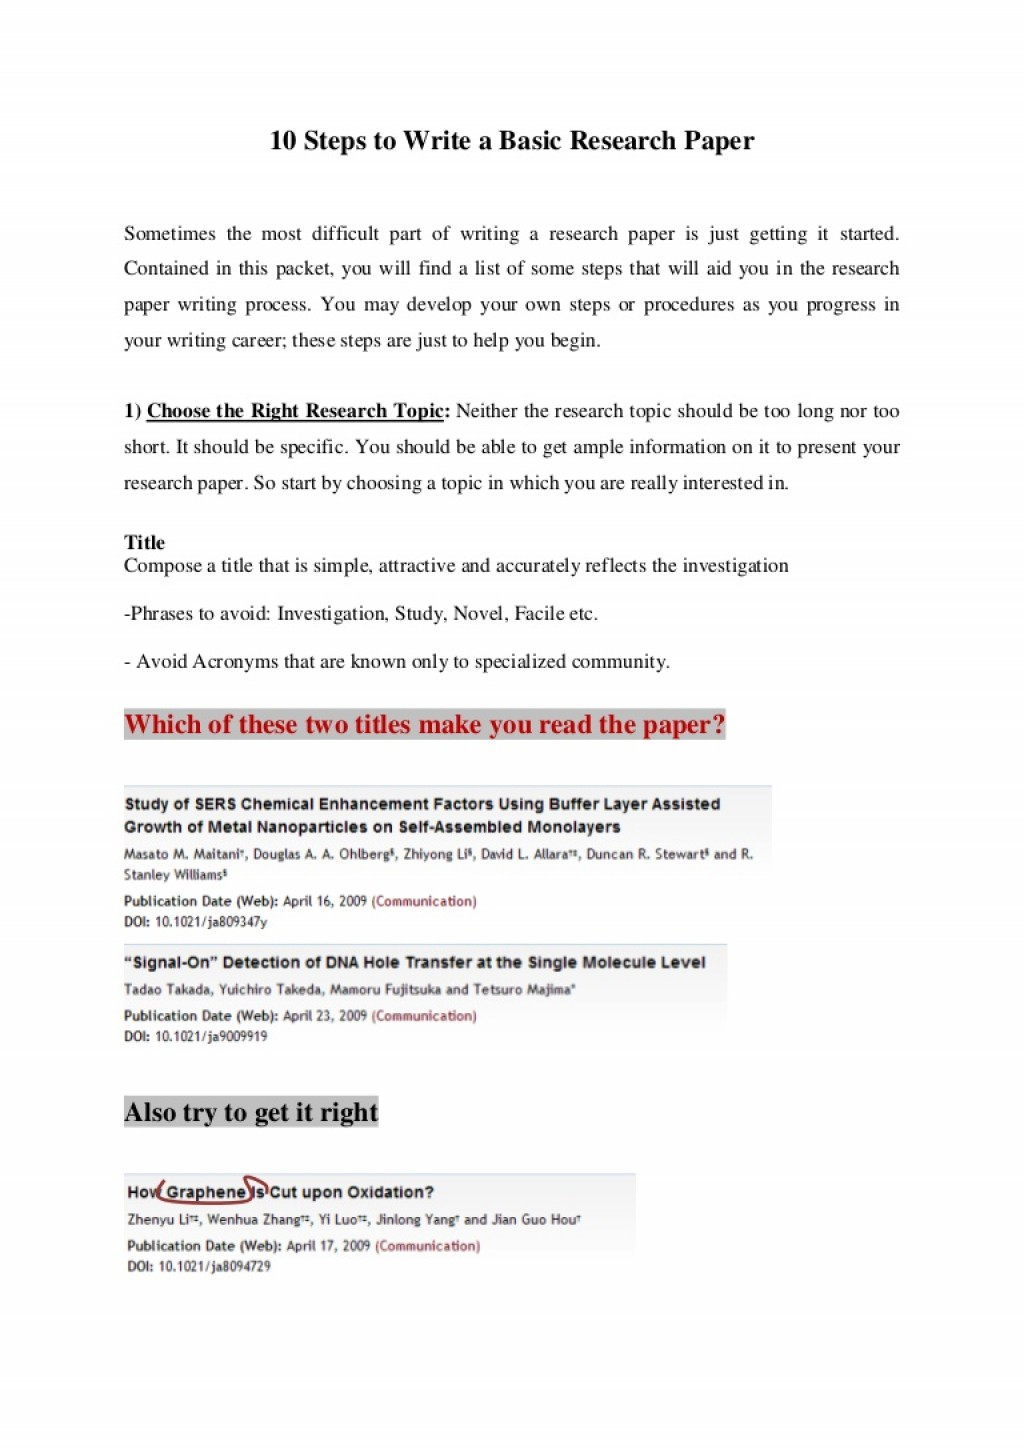 003 Steps To Writing Research Paper 10stepstowriteabasicresearchpaper Thumbnail Fearsome A College Introduction High School Large